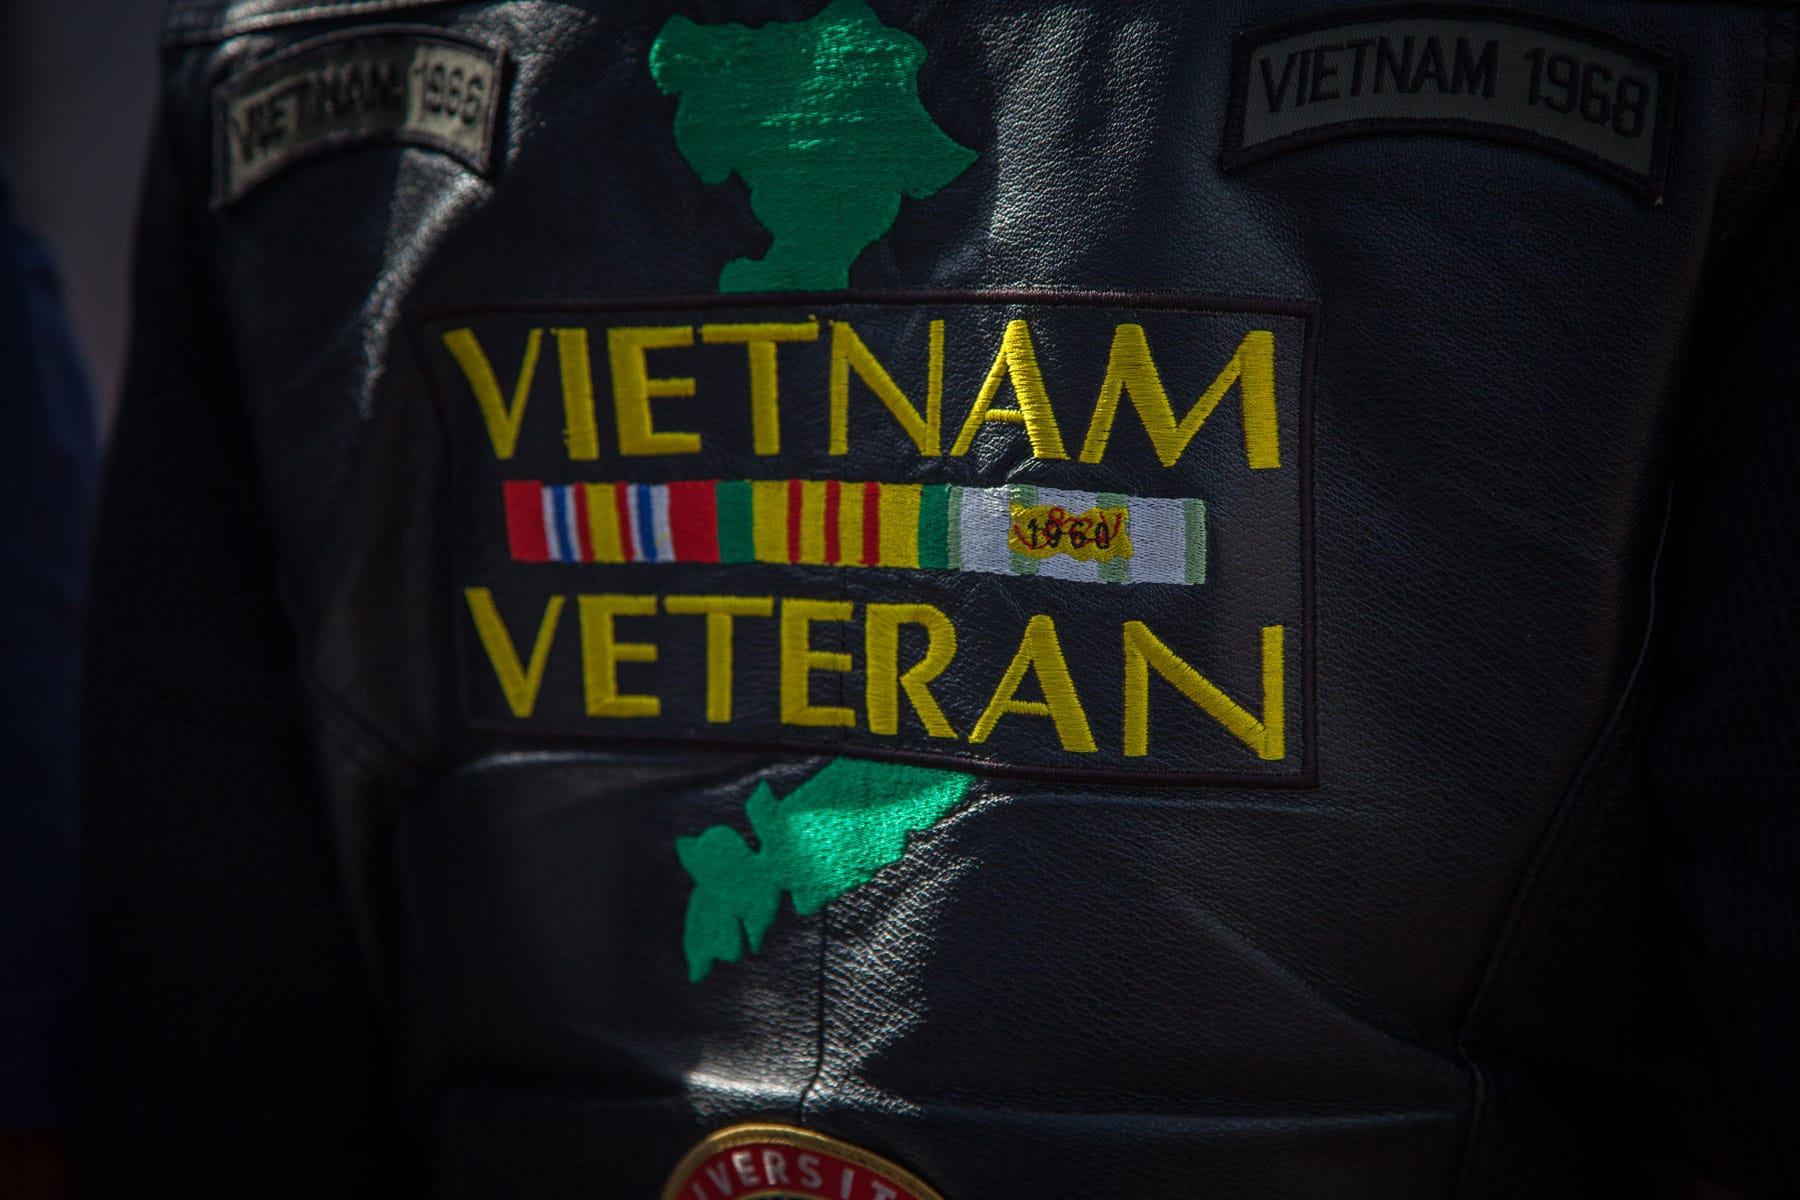 Detroit Vietnam veterans dress in their favorite veterans gear at a Vietnam veterans pinning ceremony as part of Marine Week Detroit.